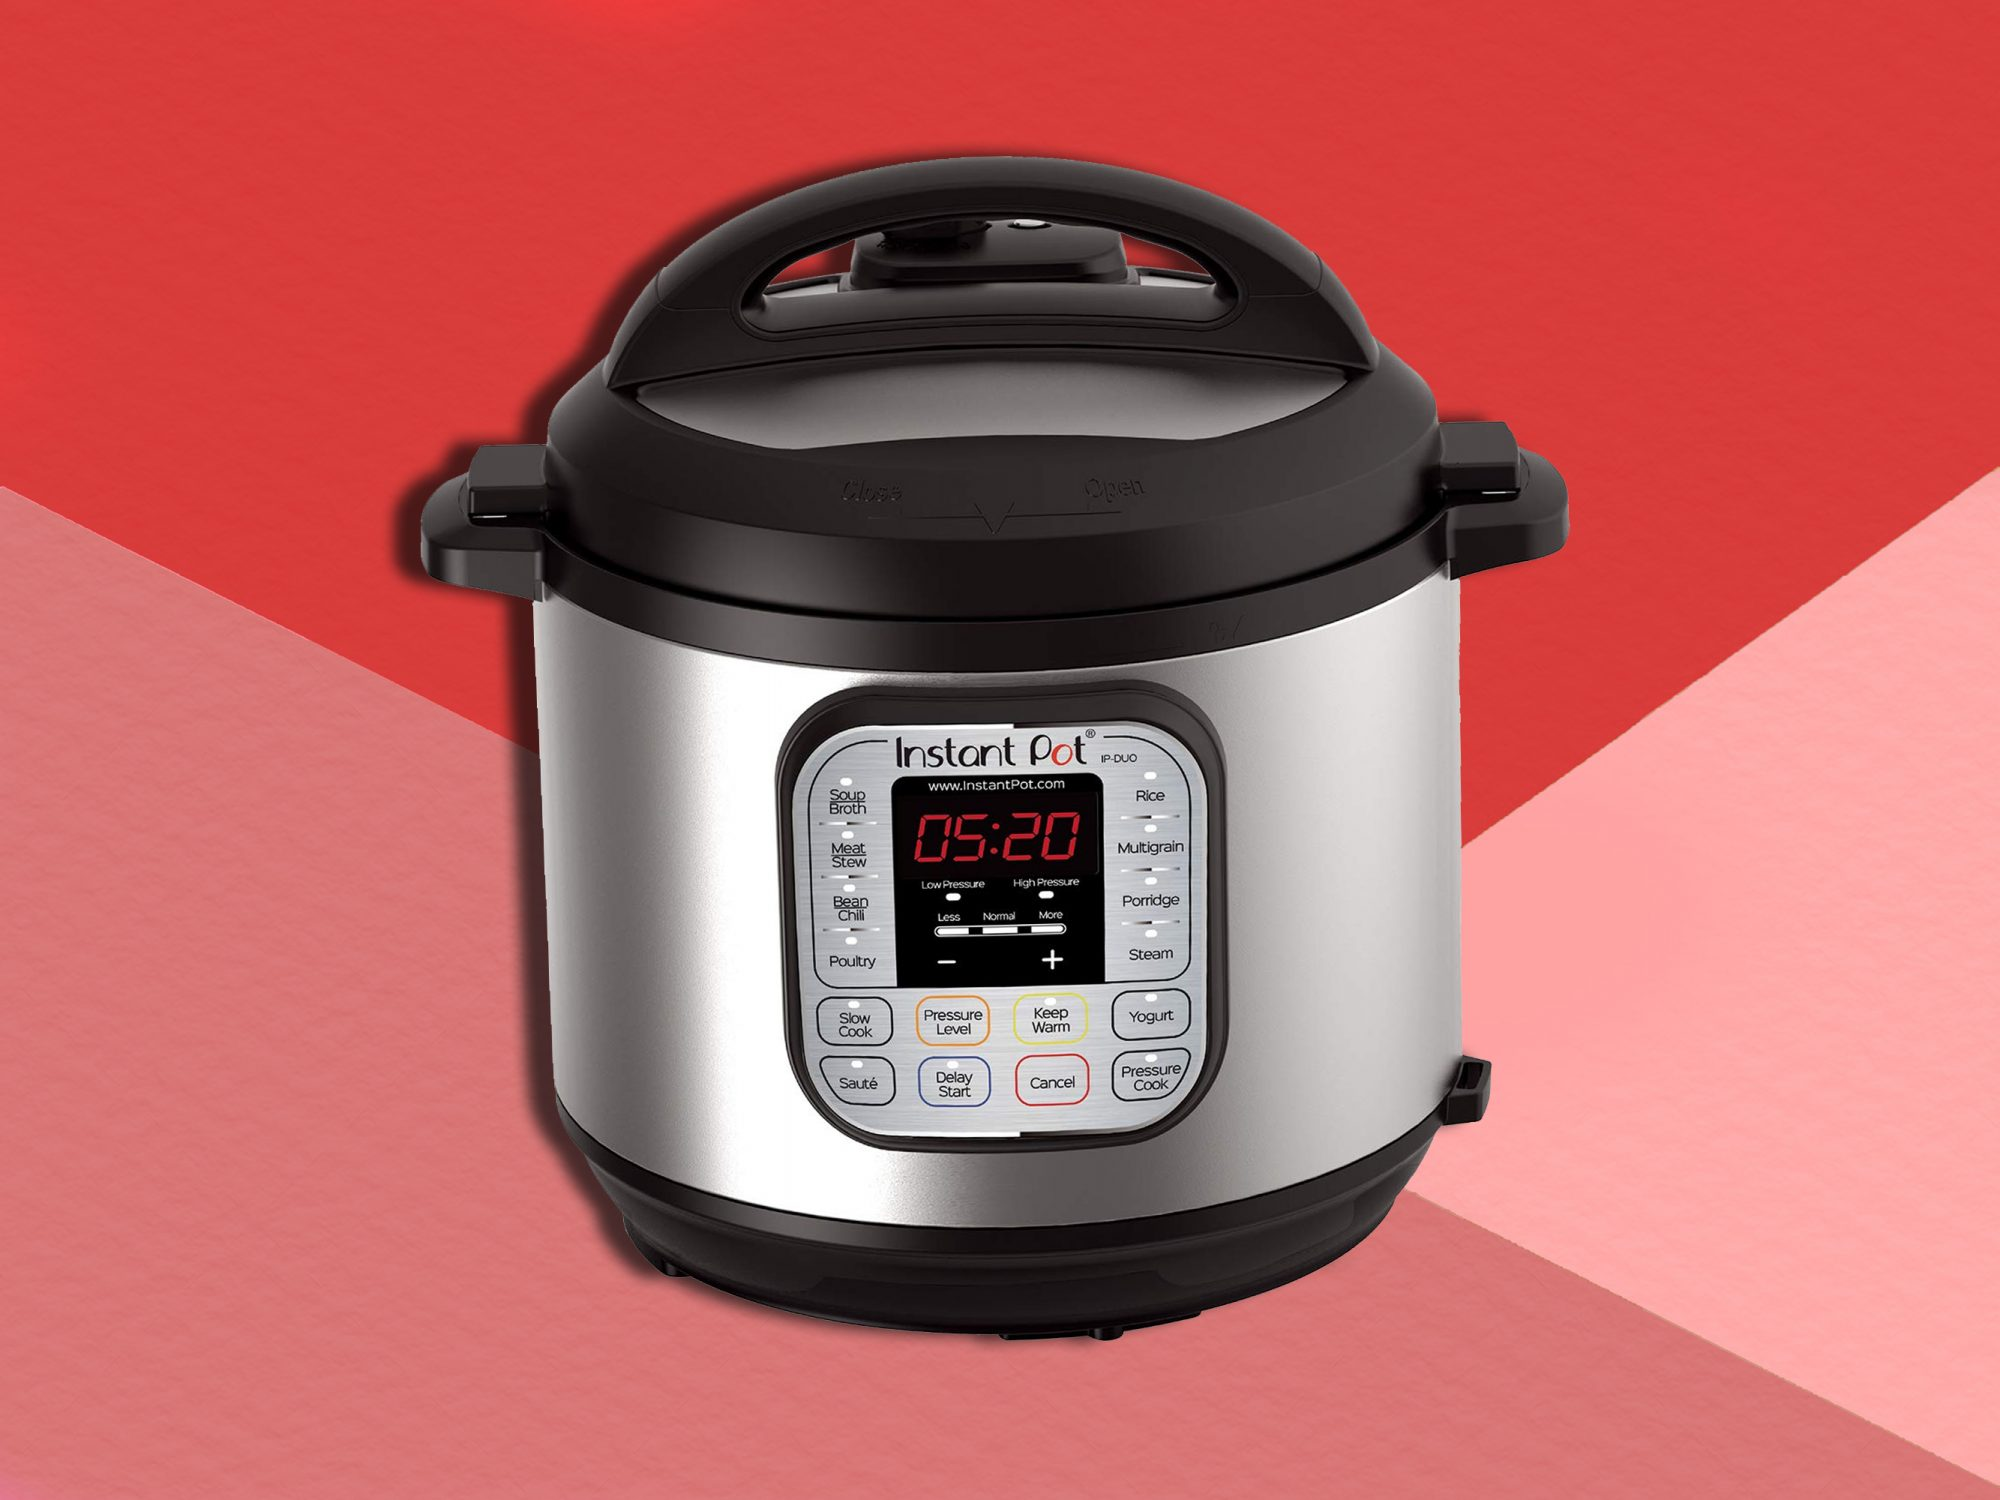 You Can Buy an Instant Pot for Less Than $60 at Macy's Right Now